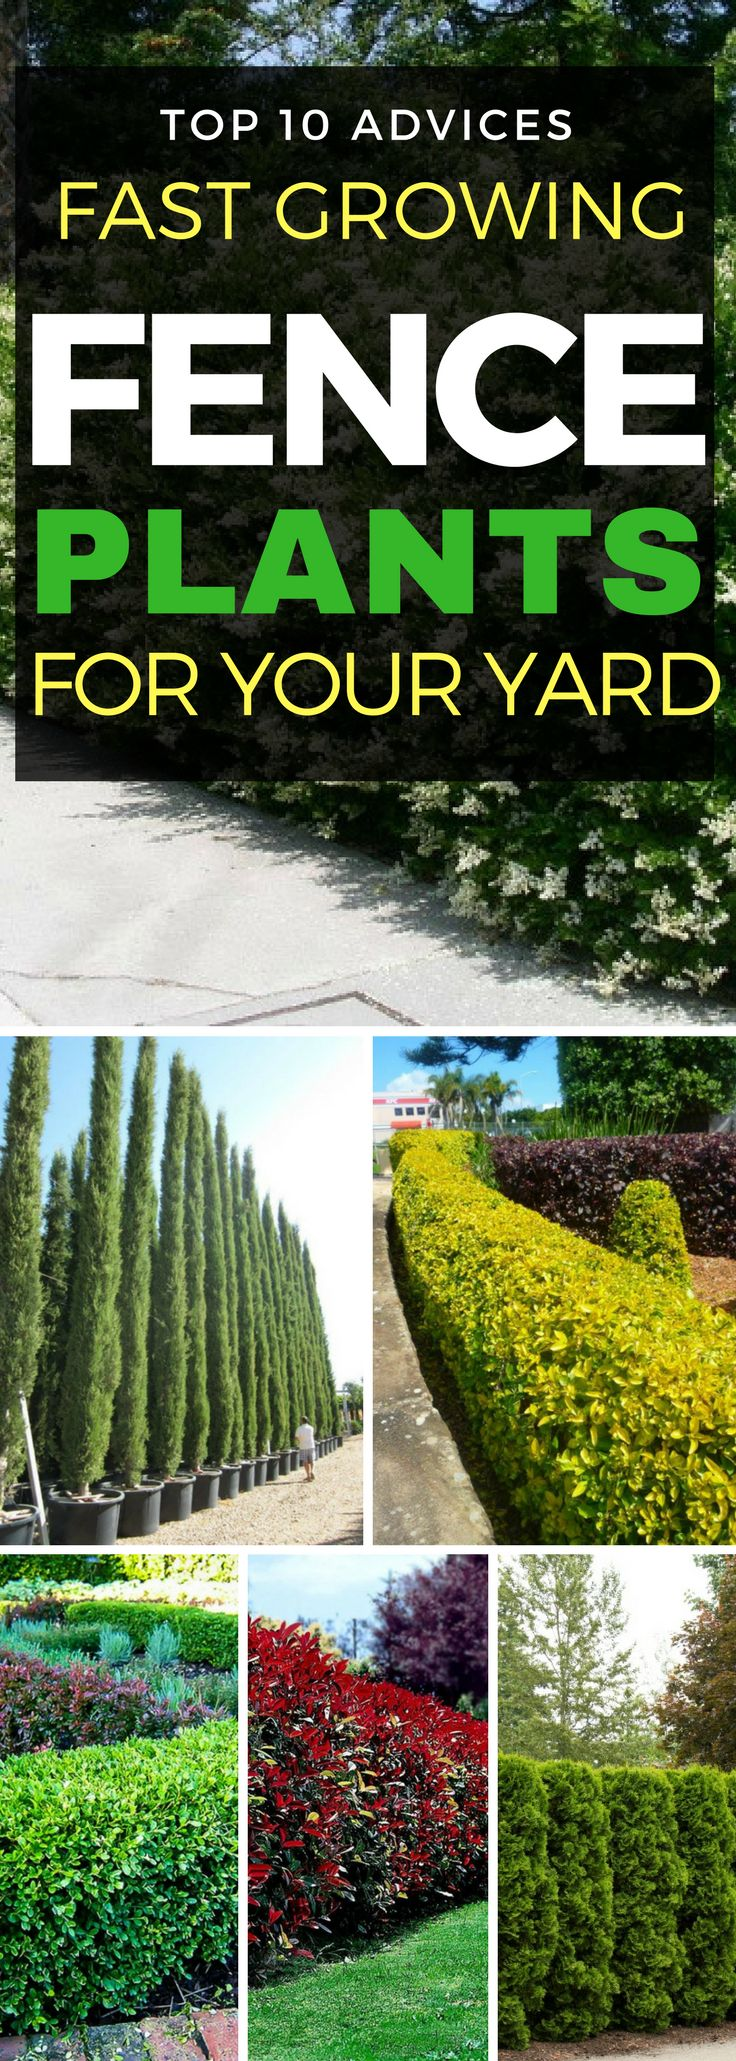 See if more than one of these is zoned 3, Colorado or Rocky Mountains 1. Bamboo 2. Privet 3. Boxwood 4. Arborvitae Cypress trees  7. Skip Laurel 8. Holly 10. Juniper